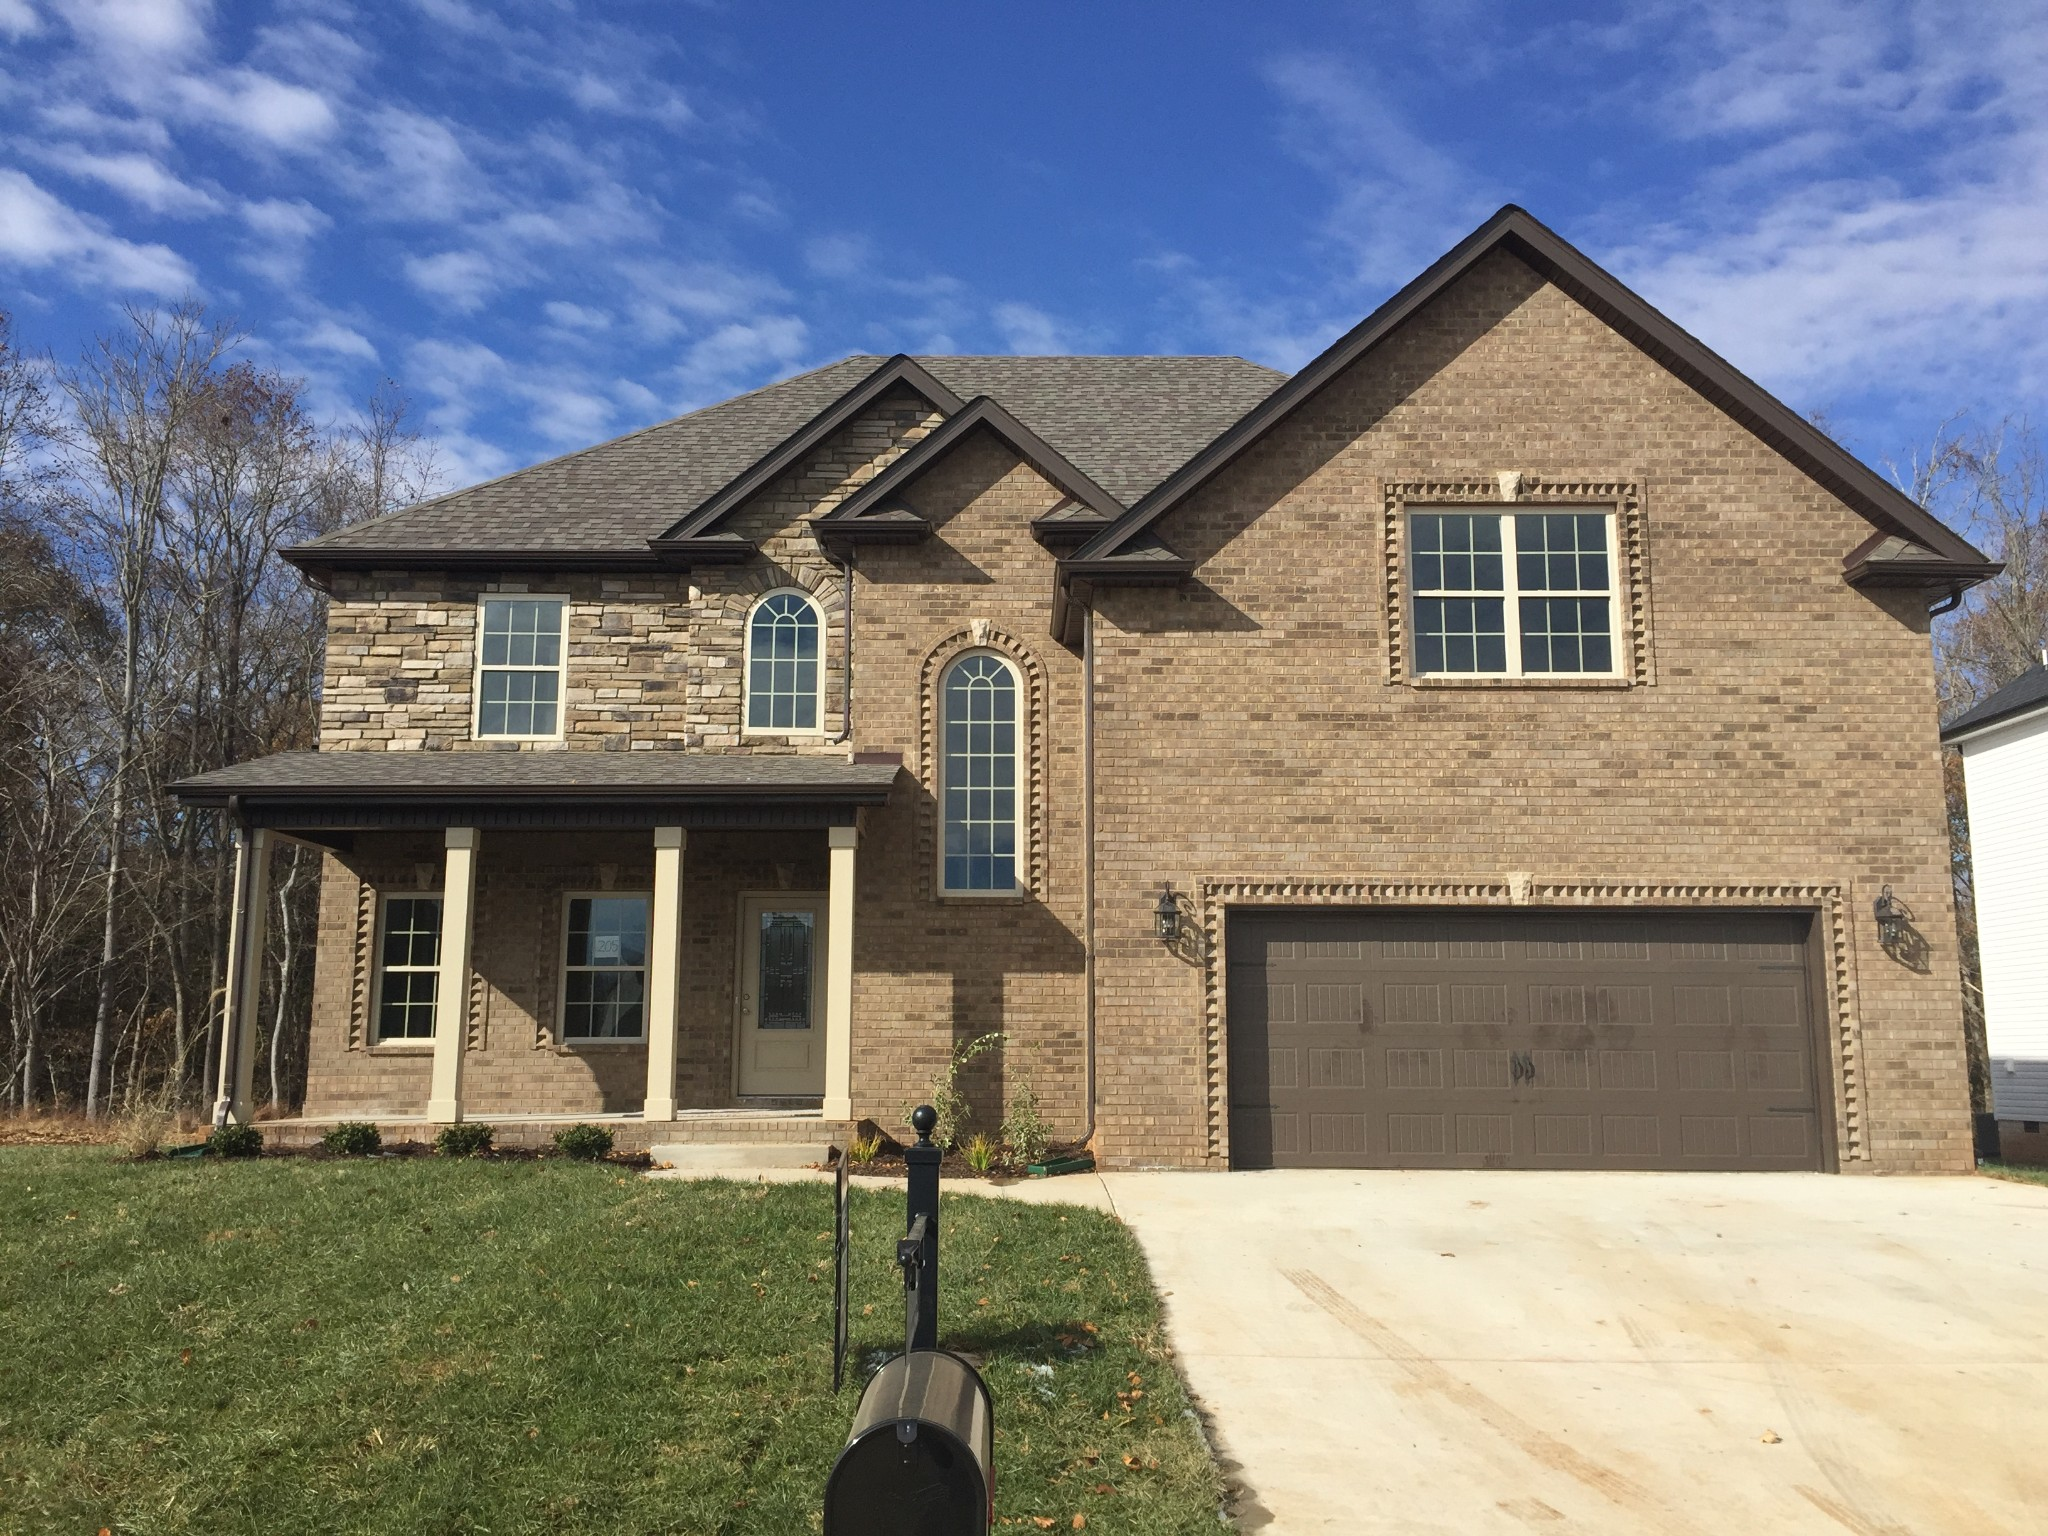 205 Timber Springs, Clarksville, TN 37042 - Clarksville, TN real estate listing